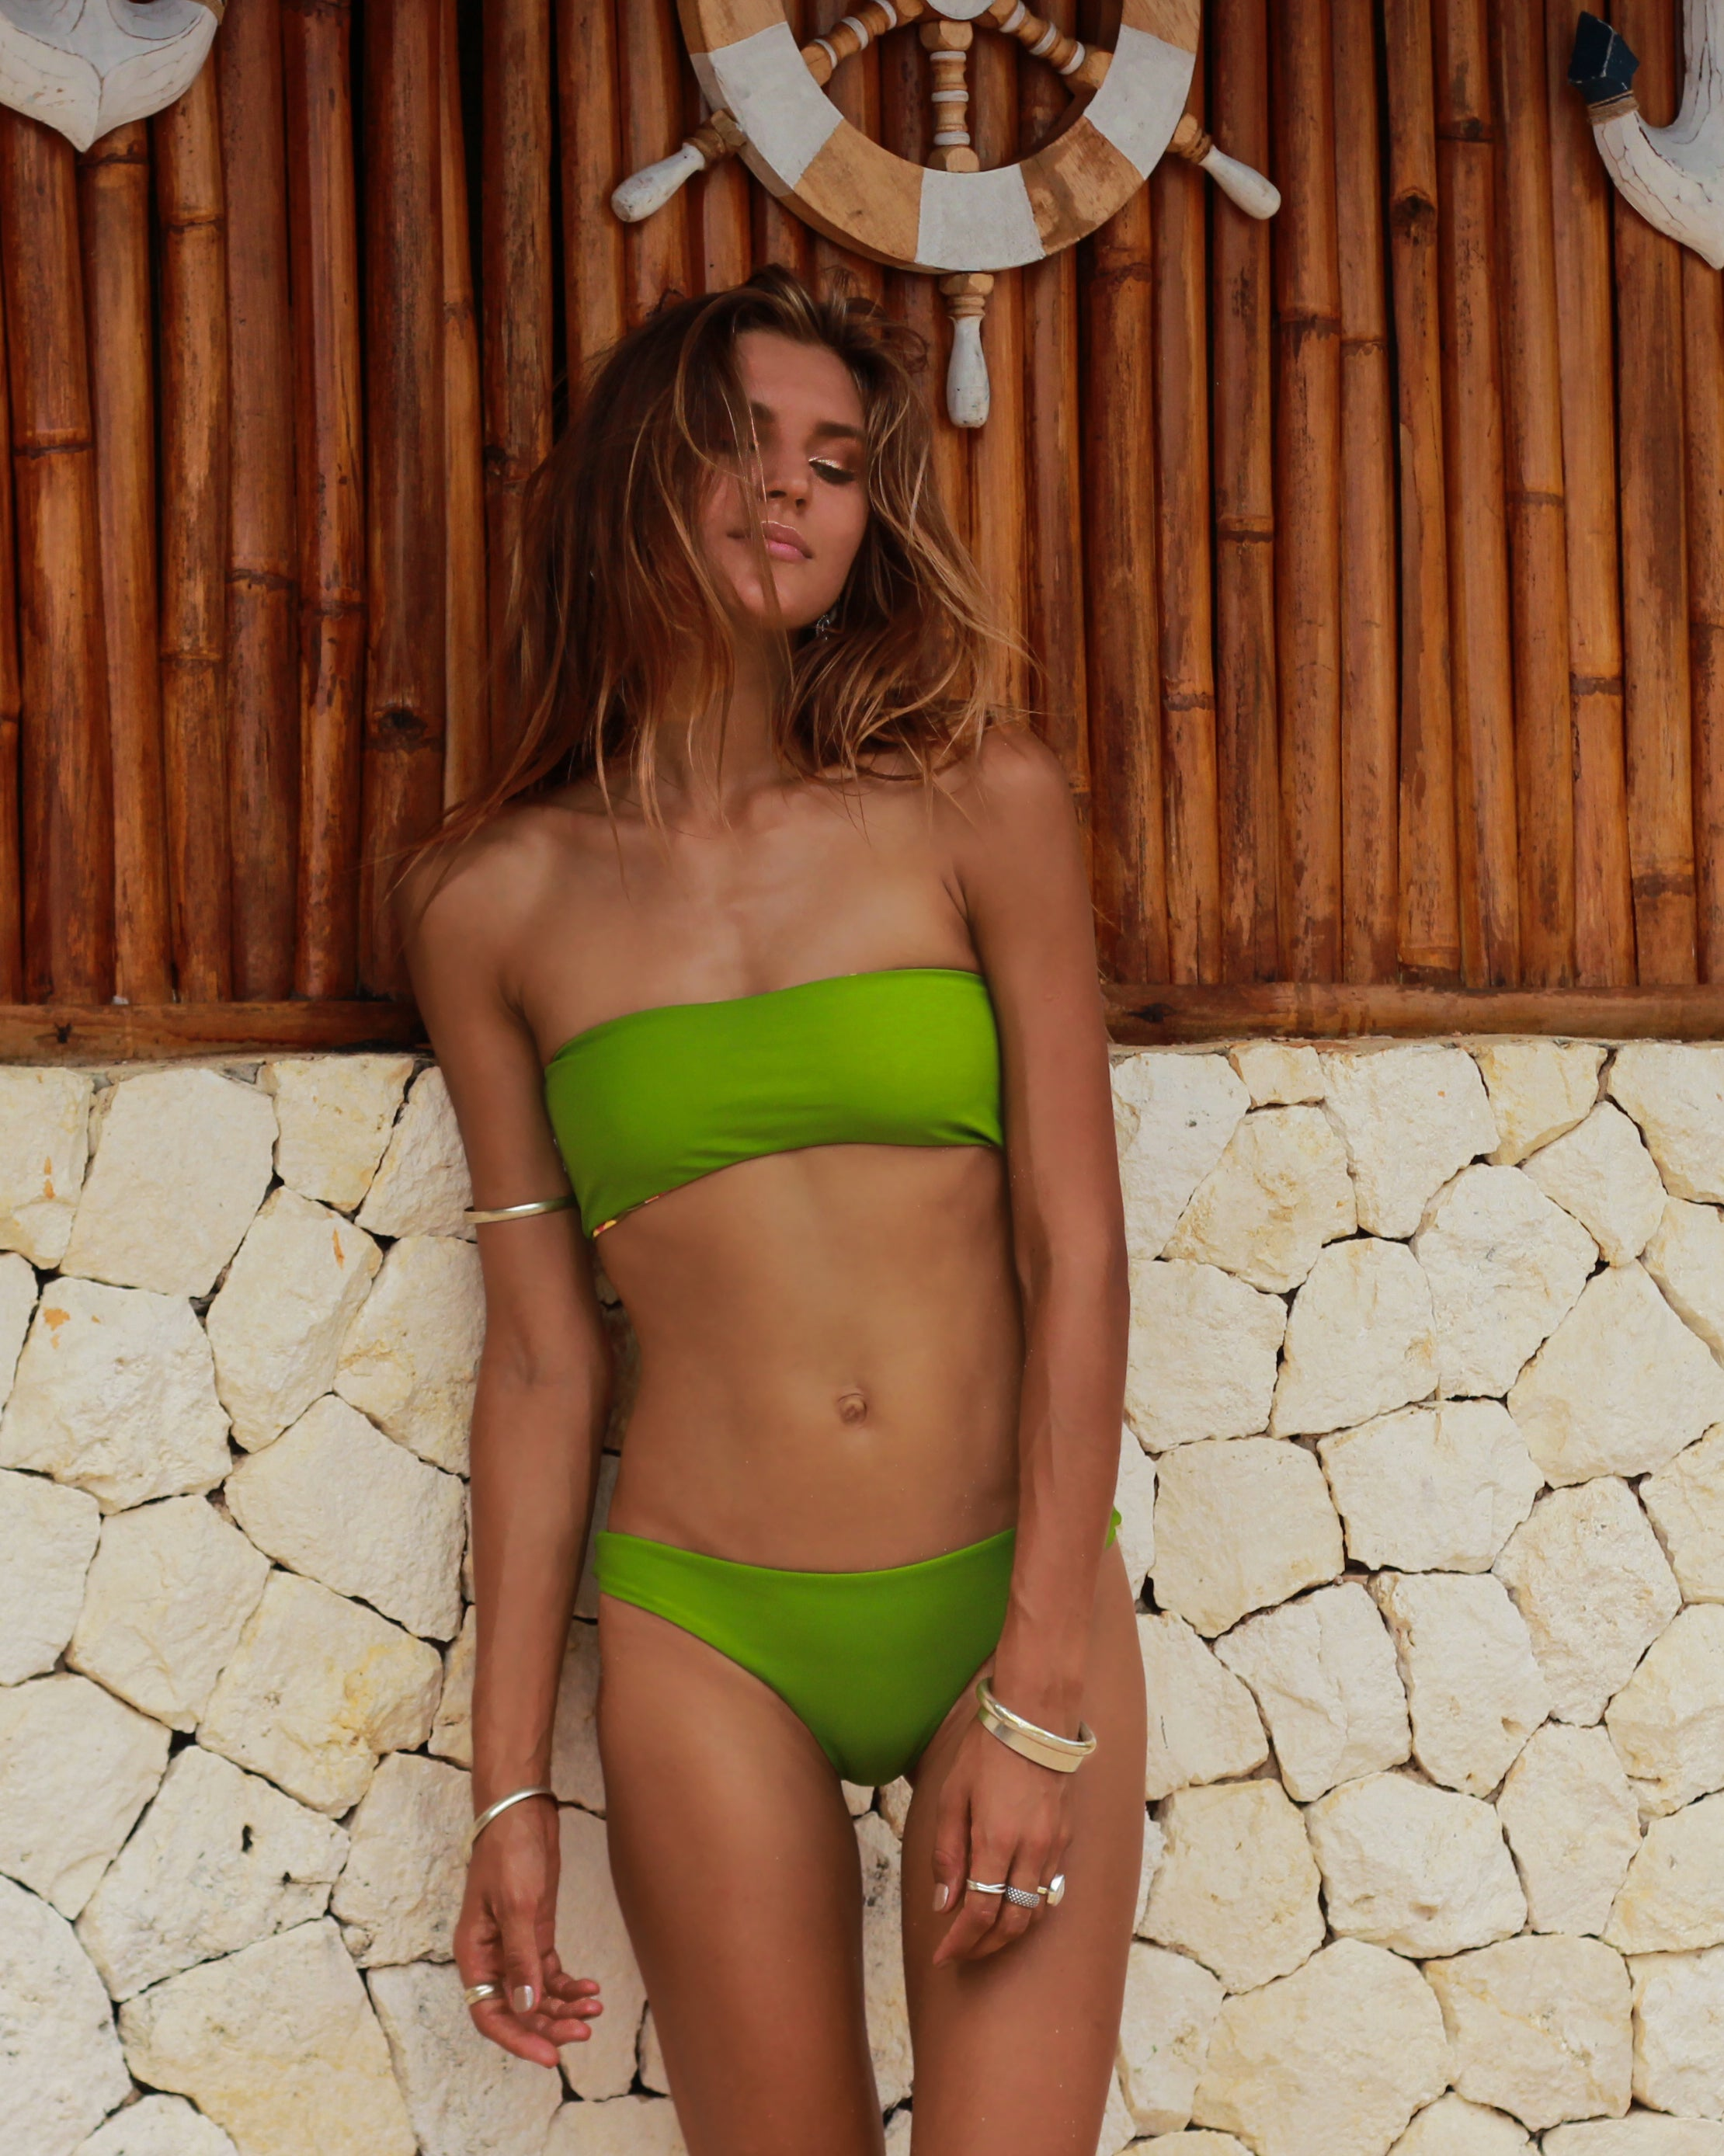 Lanka Reversible btms - Wallflower Olive / Moss - cheeky cut brazilian surf bikinis Cenote Swimwear that stays on in the surf